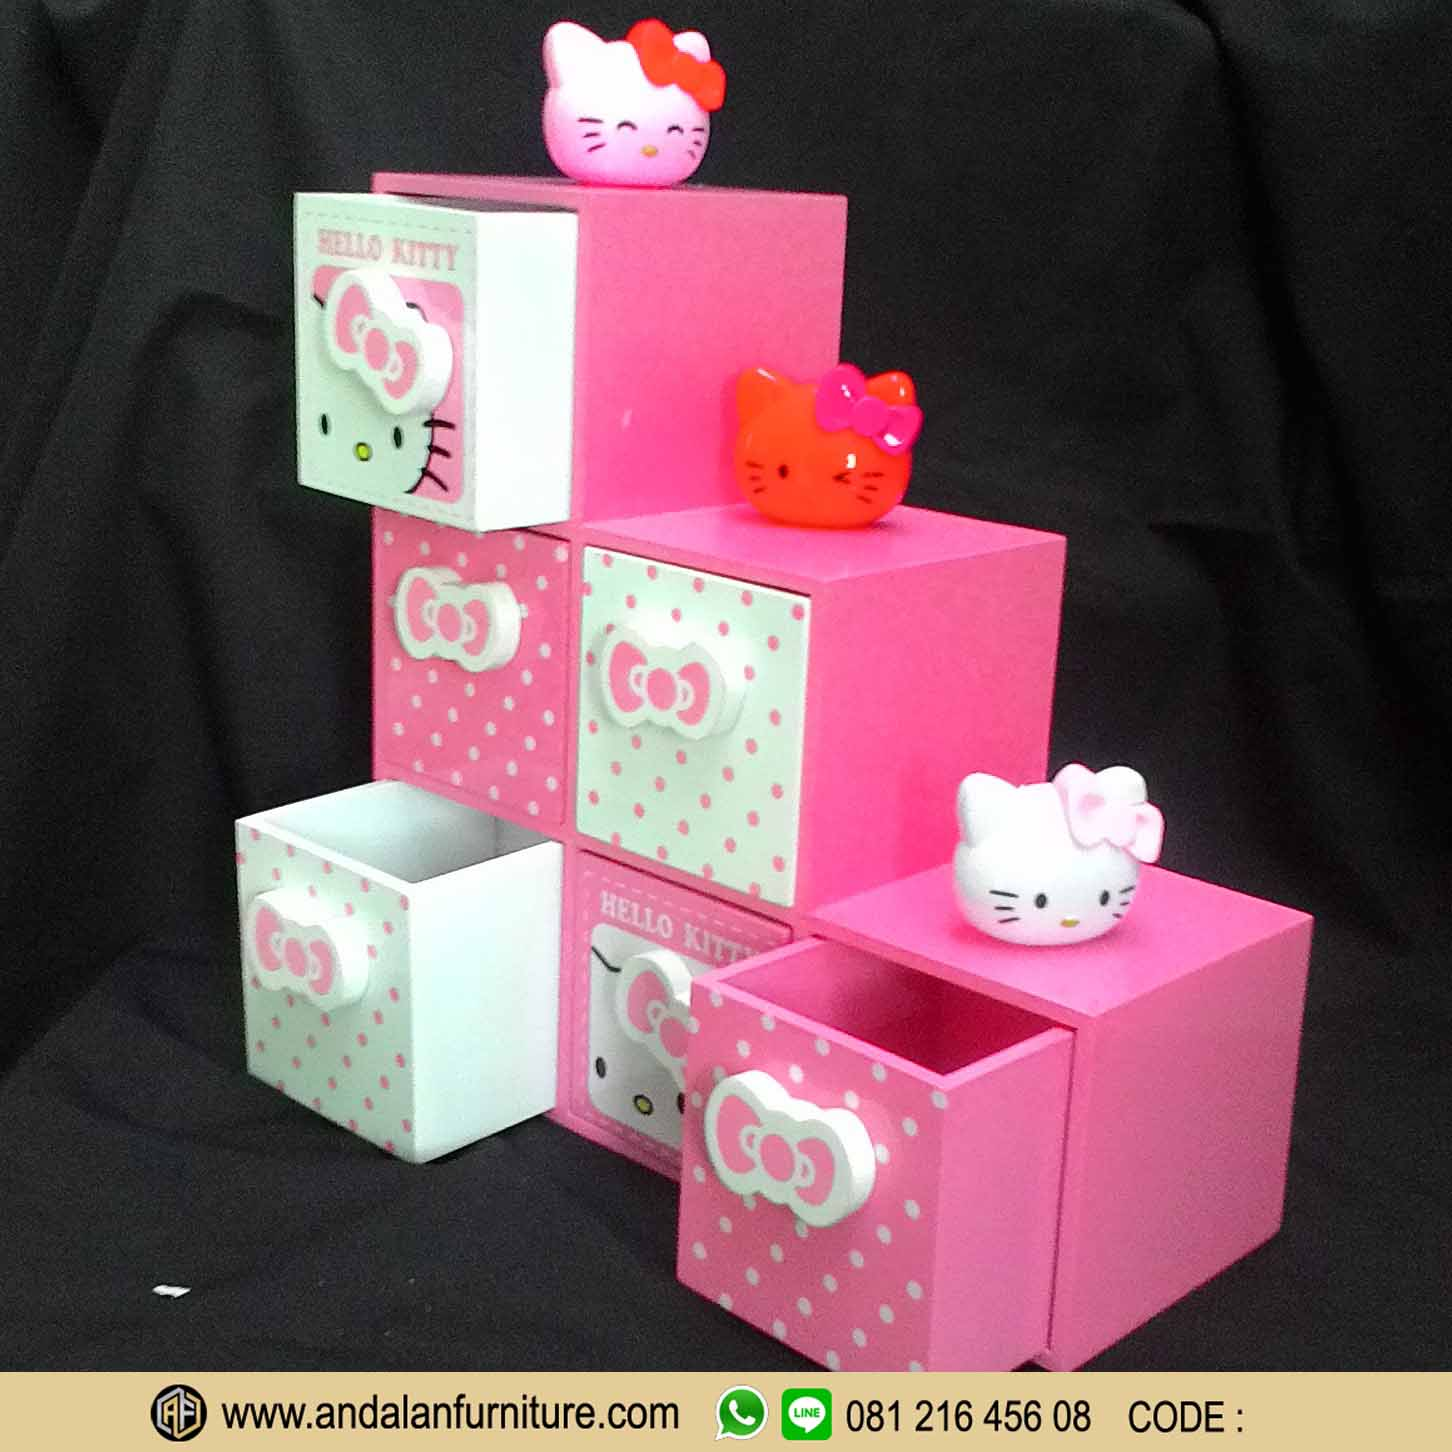 Aksesoris Model Lemari Buku Rak Minimalis Hello Kitty